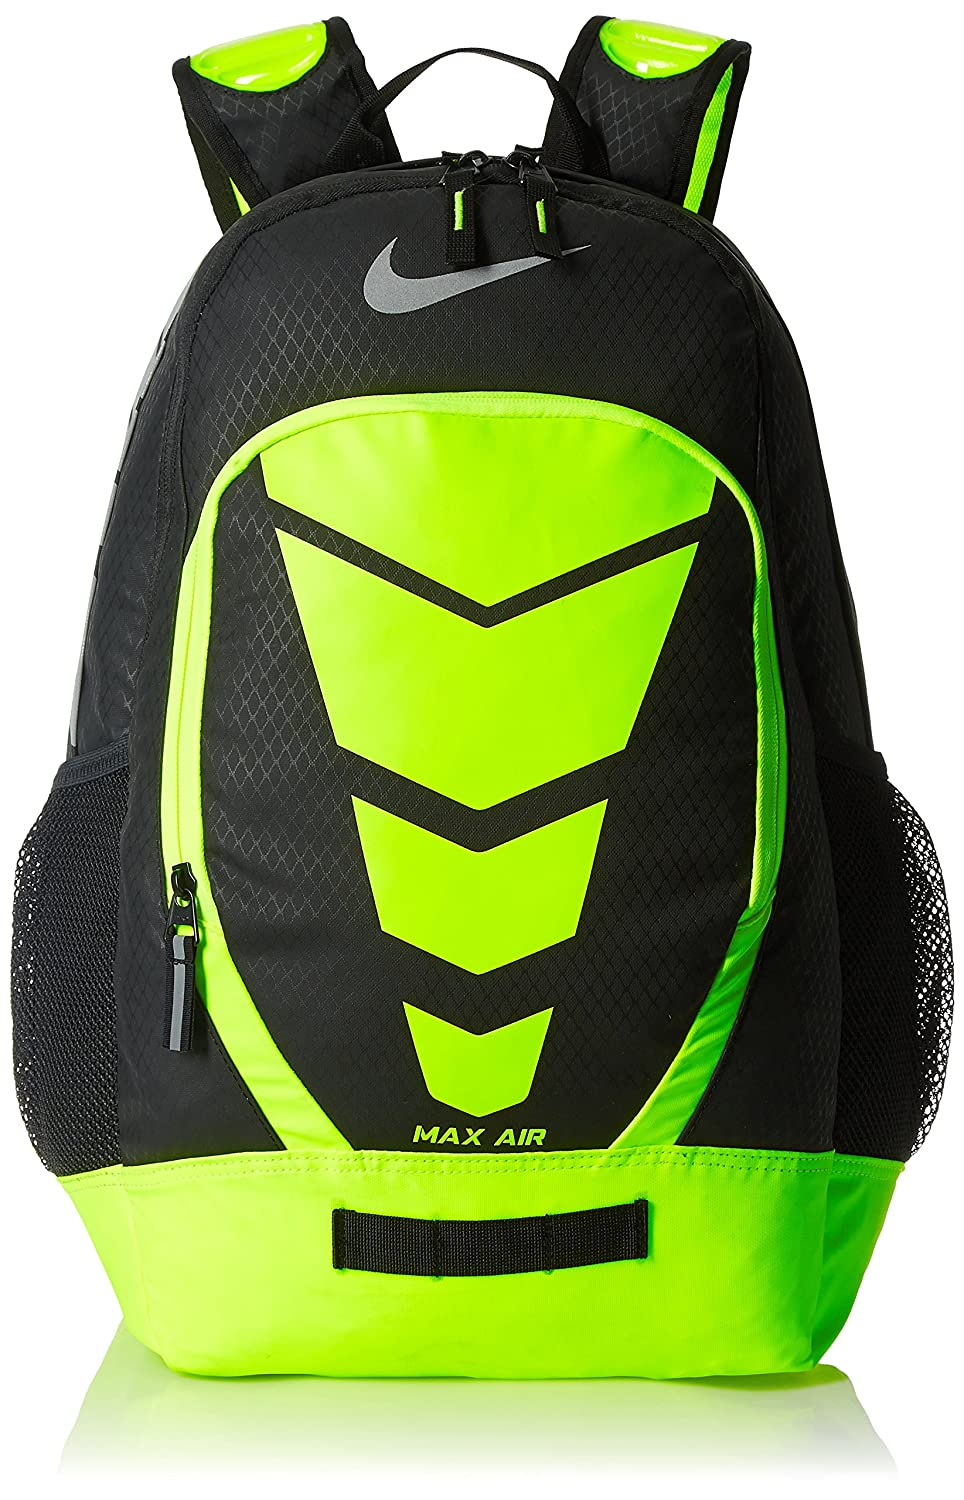 f1e703804 nike max air backpack online > OFF68% Discounts